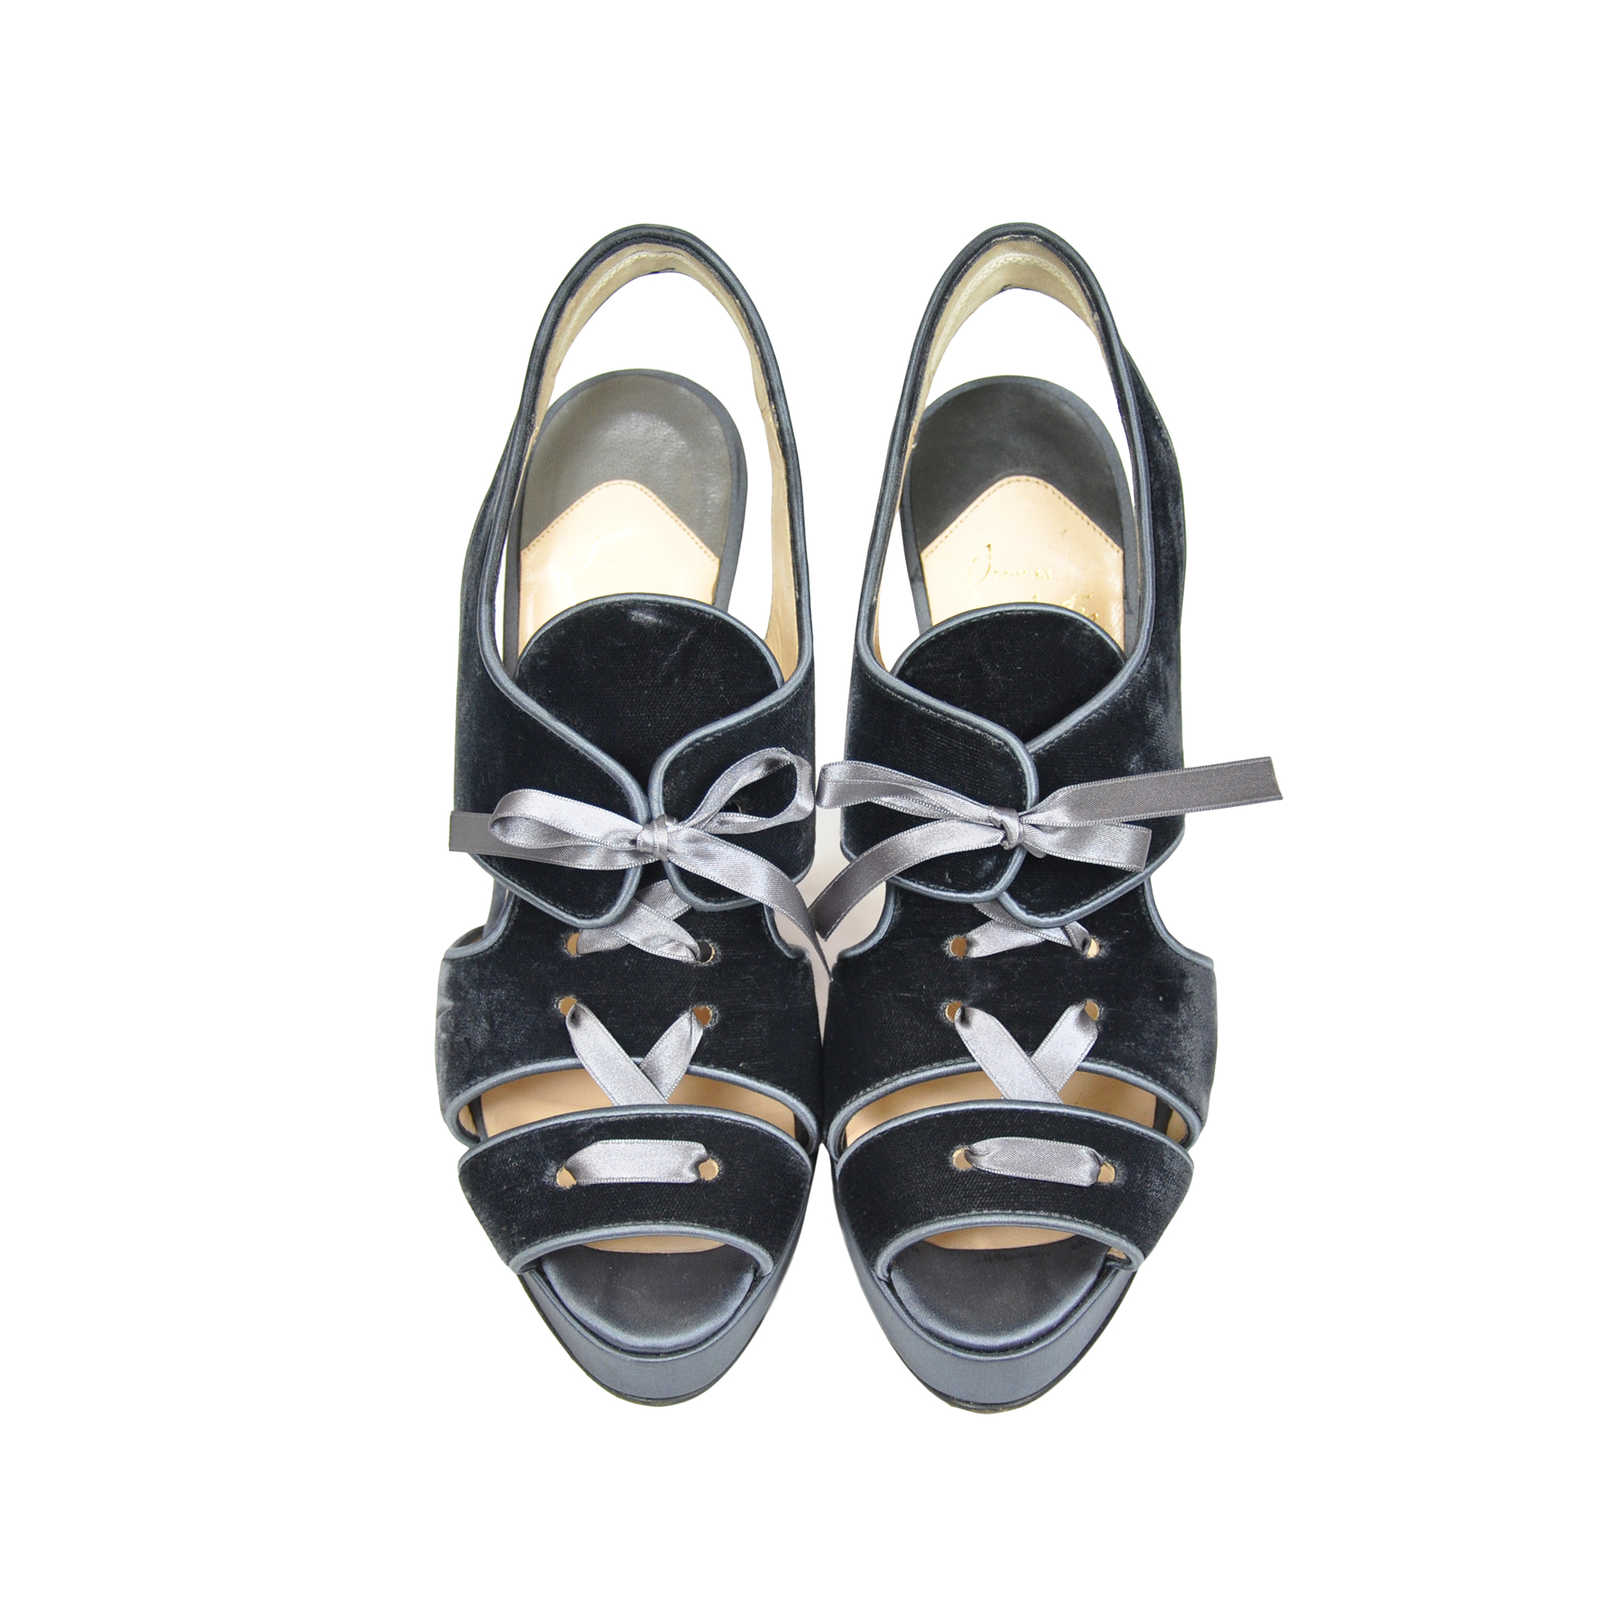 eb3540665c8 Authentic Second Hand Christian Louboutin Sarah B Sandals (PSS-073-00025)  ...